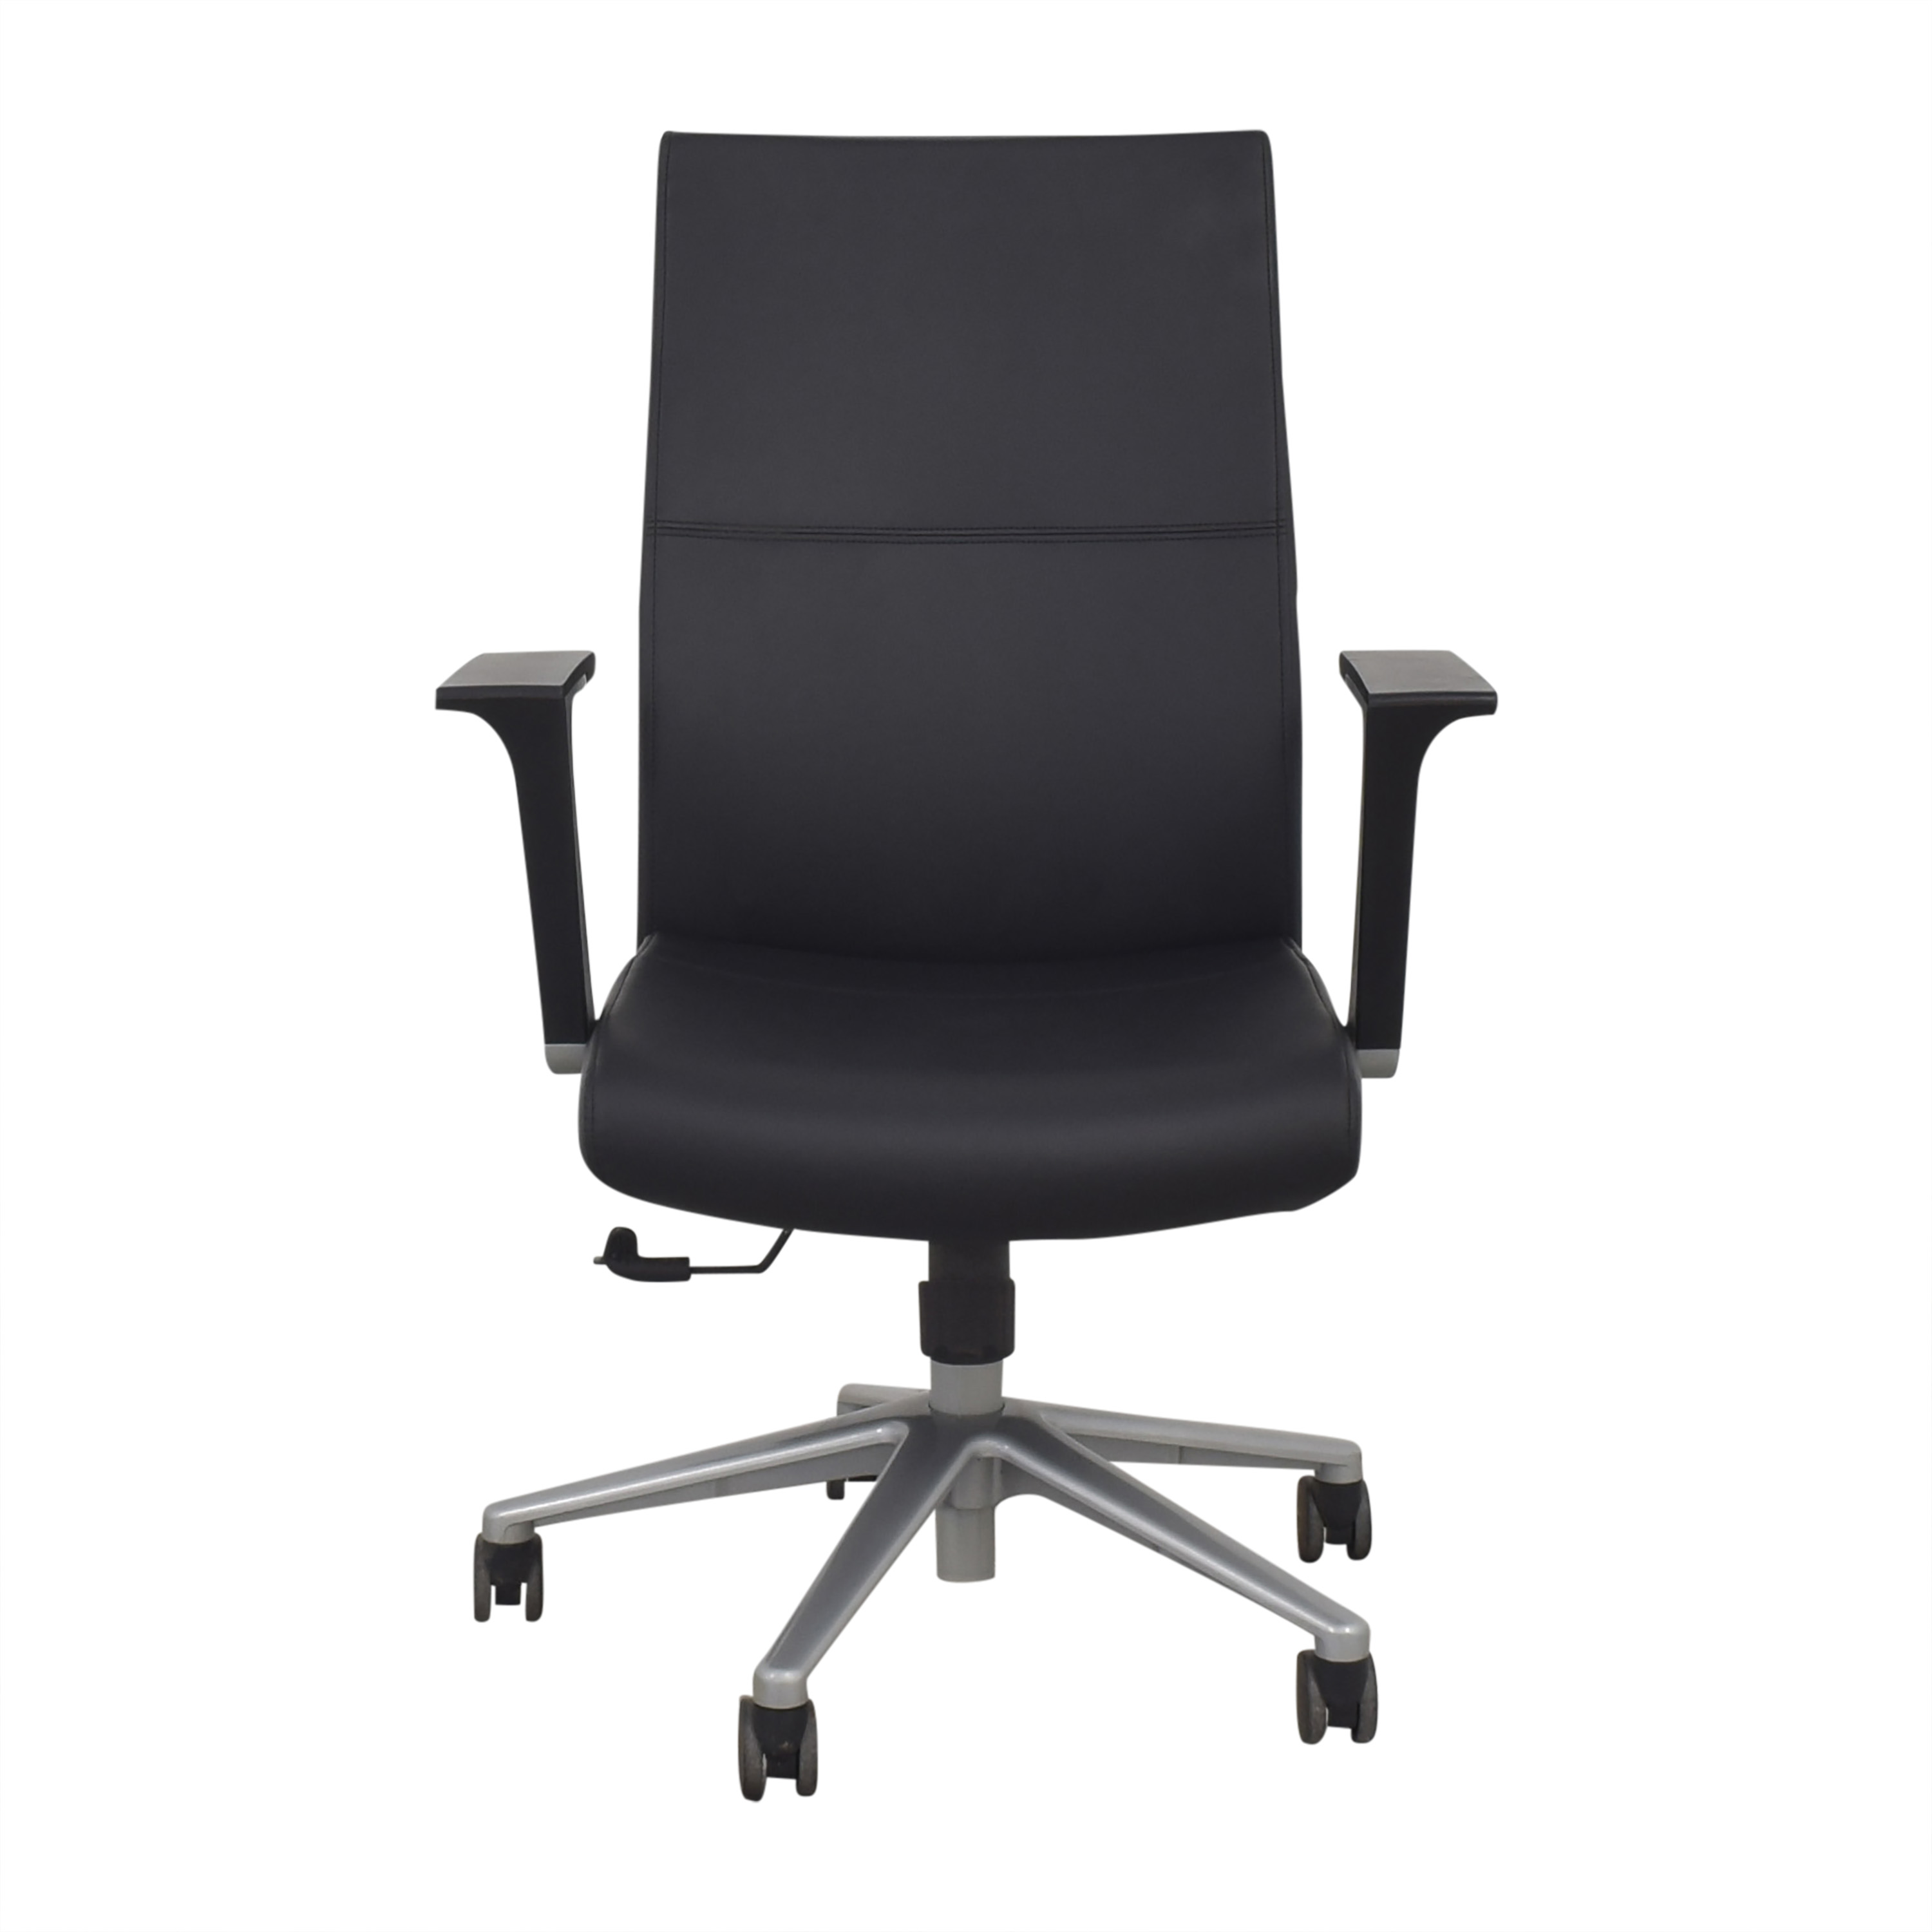 SitOnIt SitOnIt Prava Office Chair price